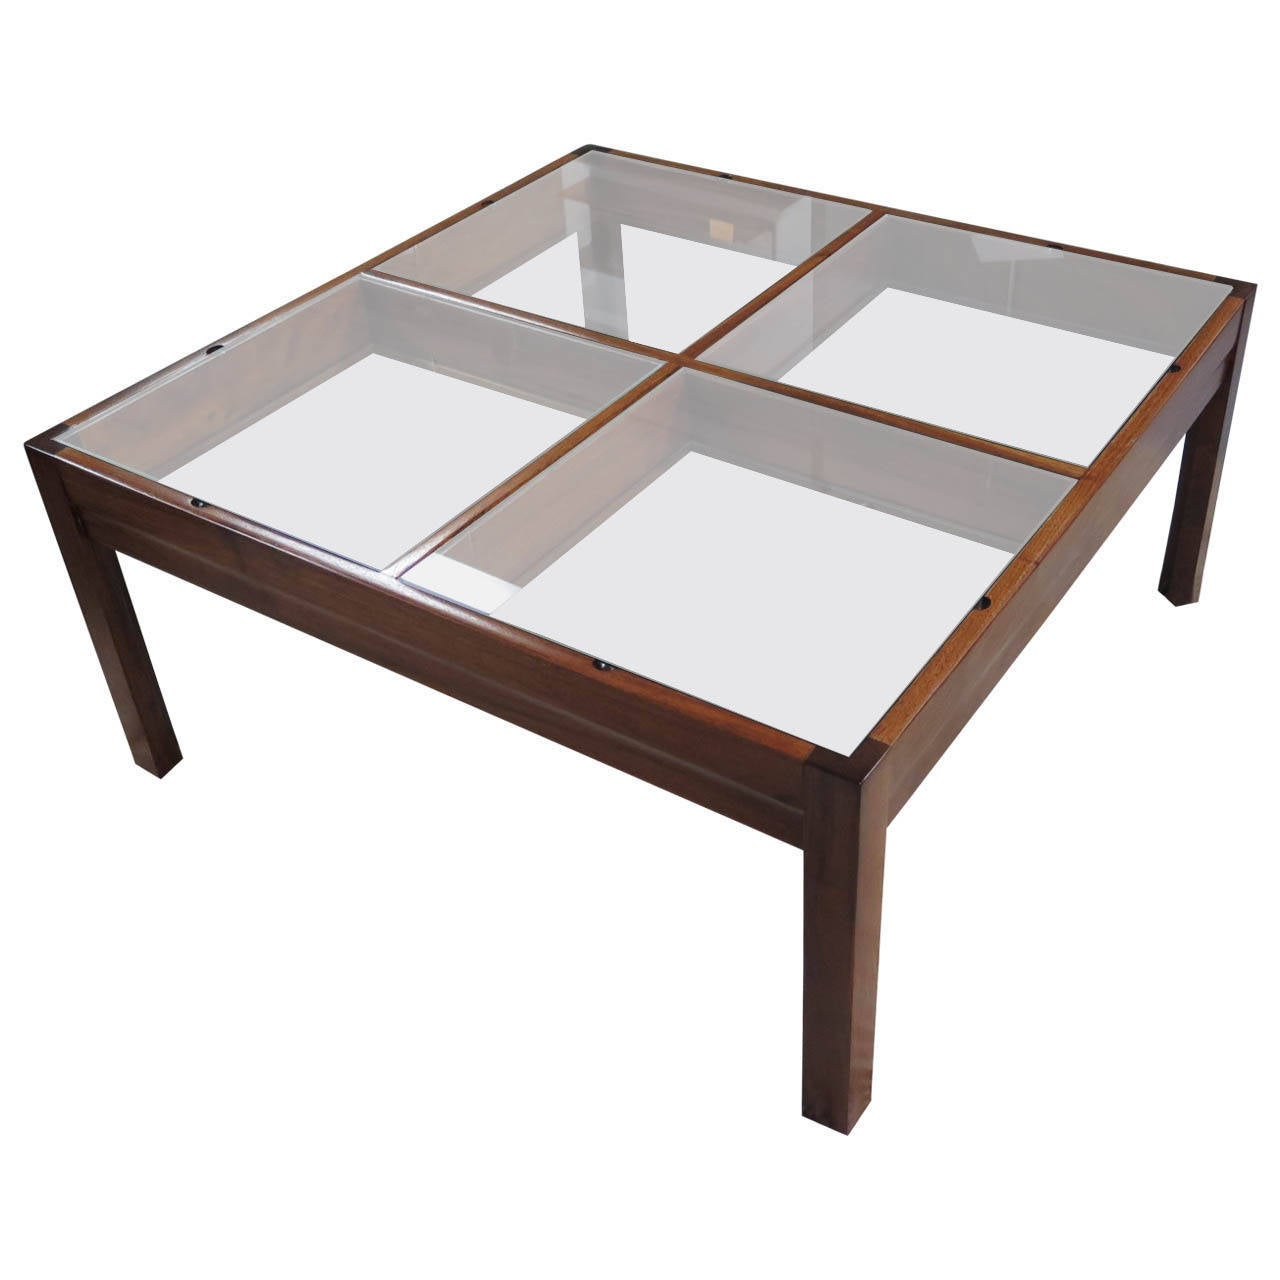 Unusual display coffee table 1960 at 1stdibs for Interesting tables